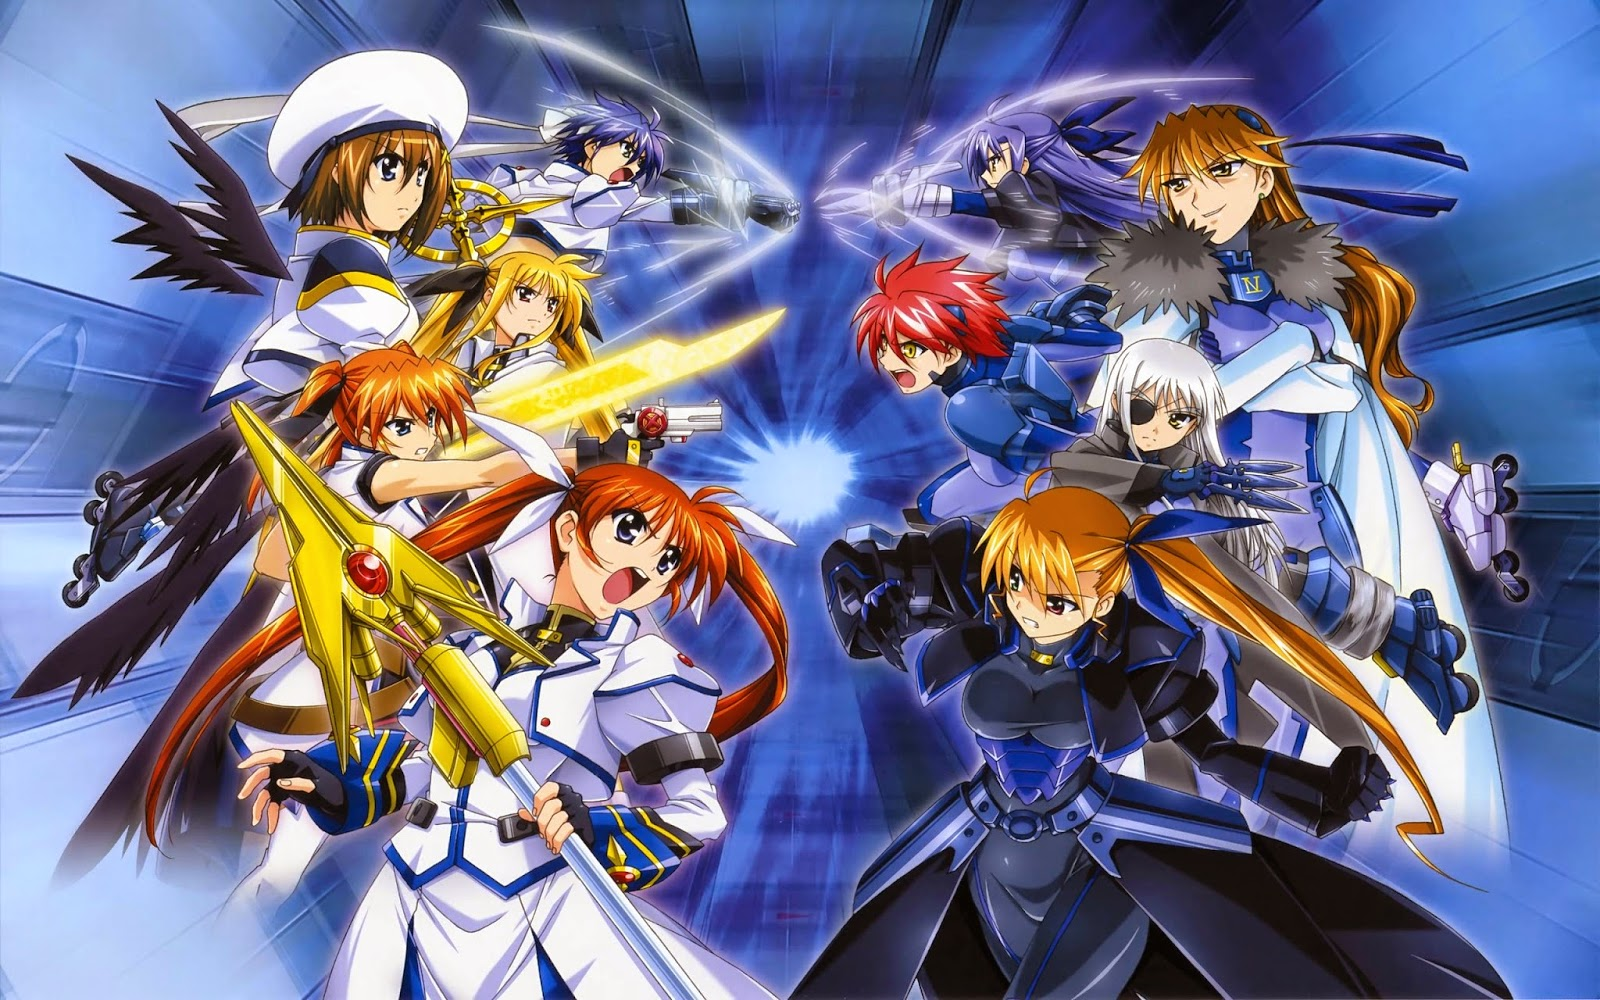 Mahou Shoujo Lyrical Nanoha Vivid - Magical Girl Lyrical Nanoha Vivid